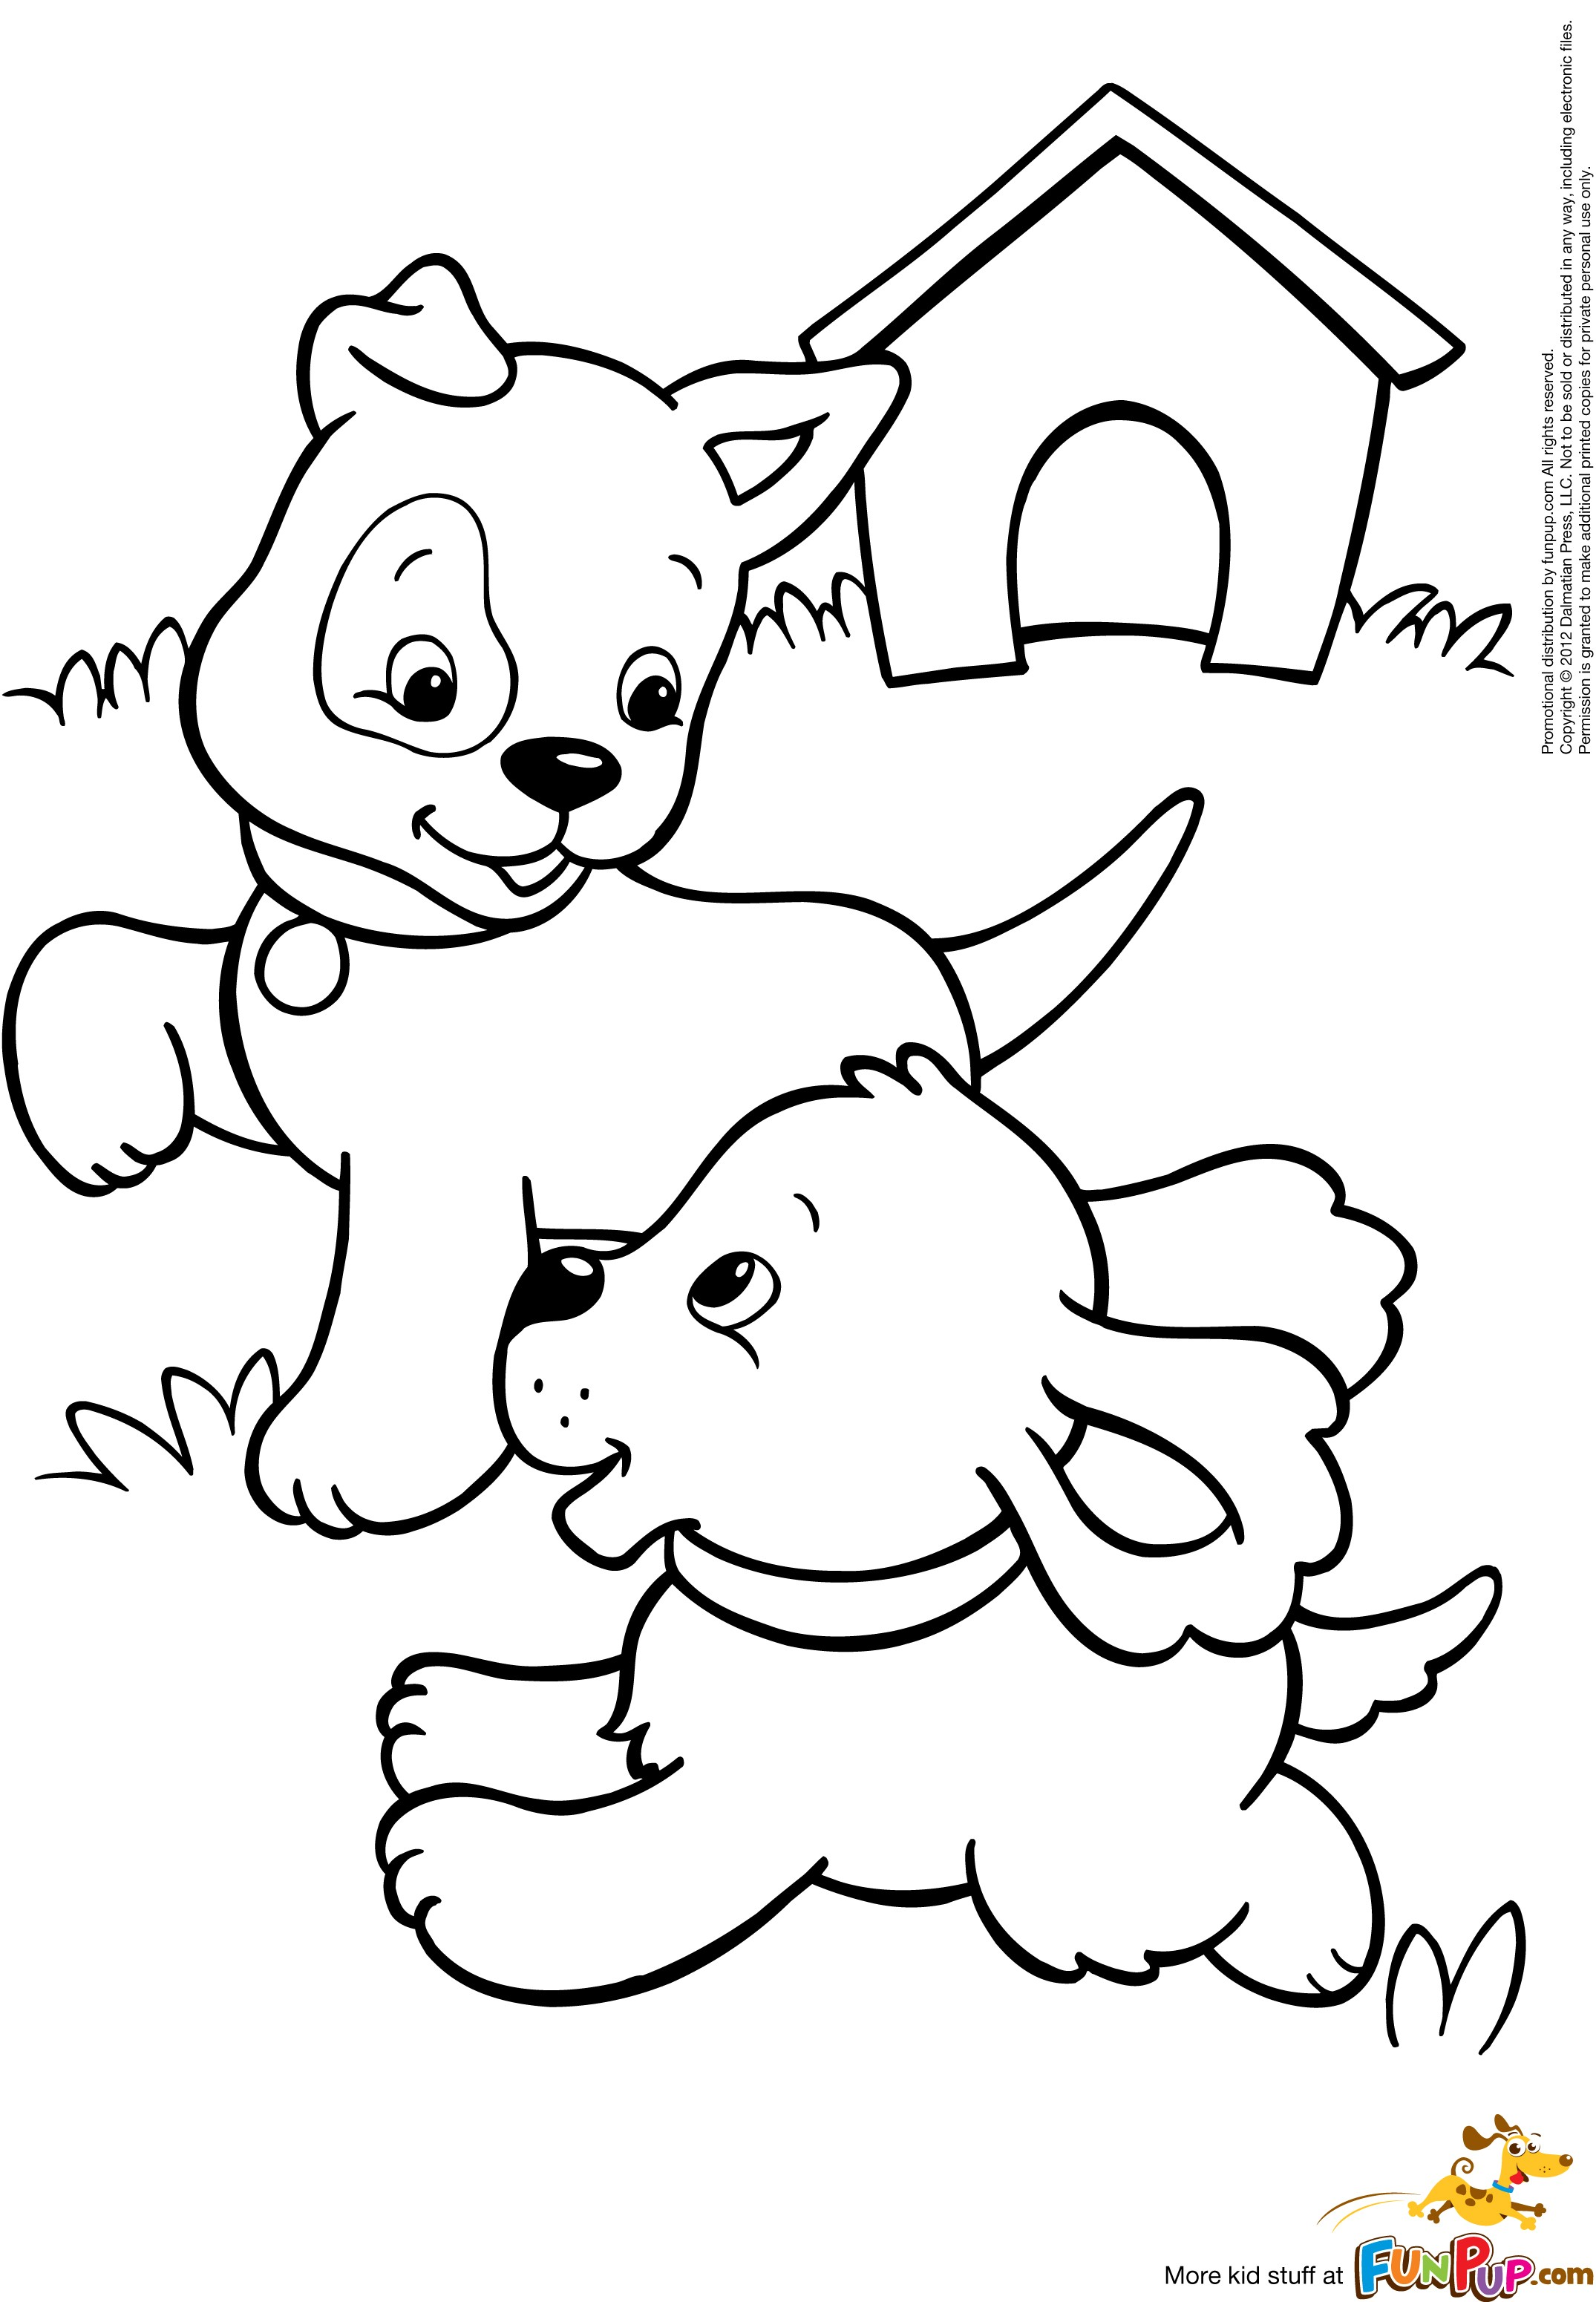 2150x3101 Exploit Coloring Pages Of Cute Dogs And Puppies Valentine Animal